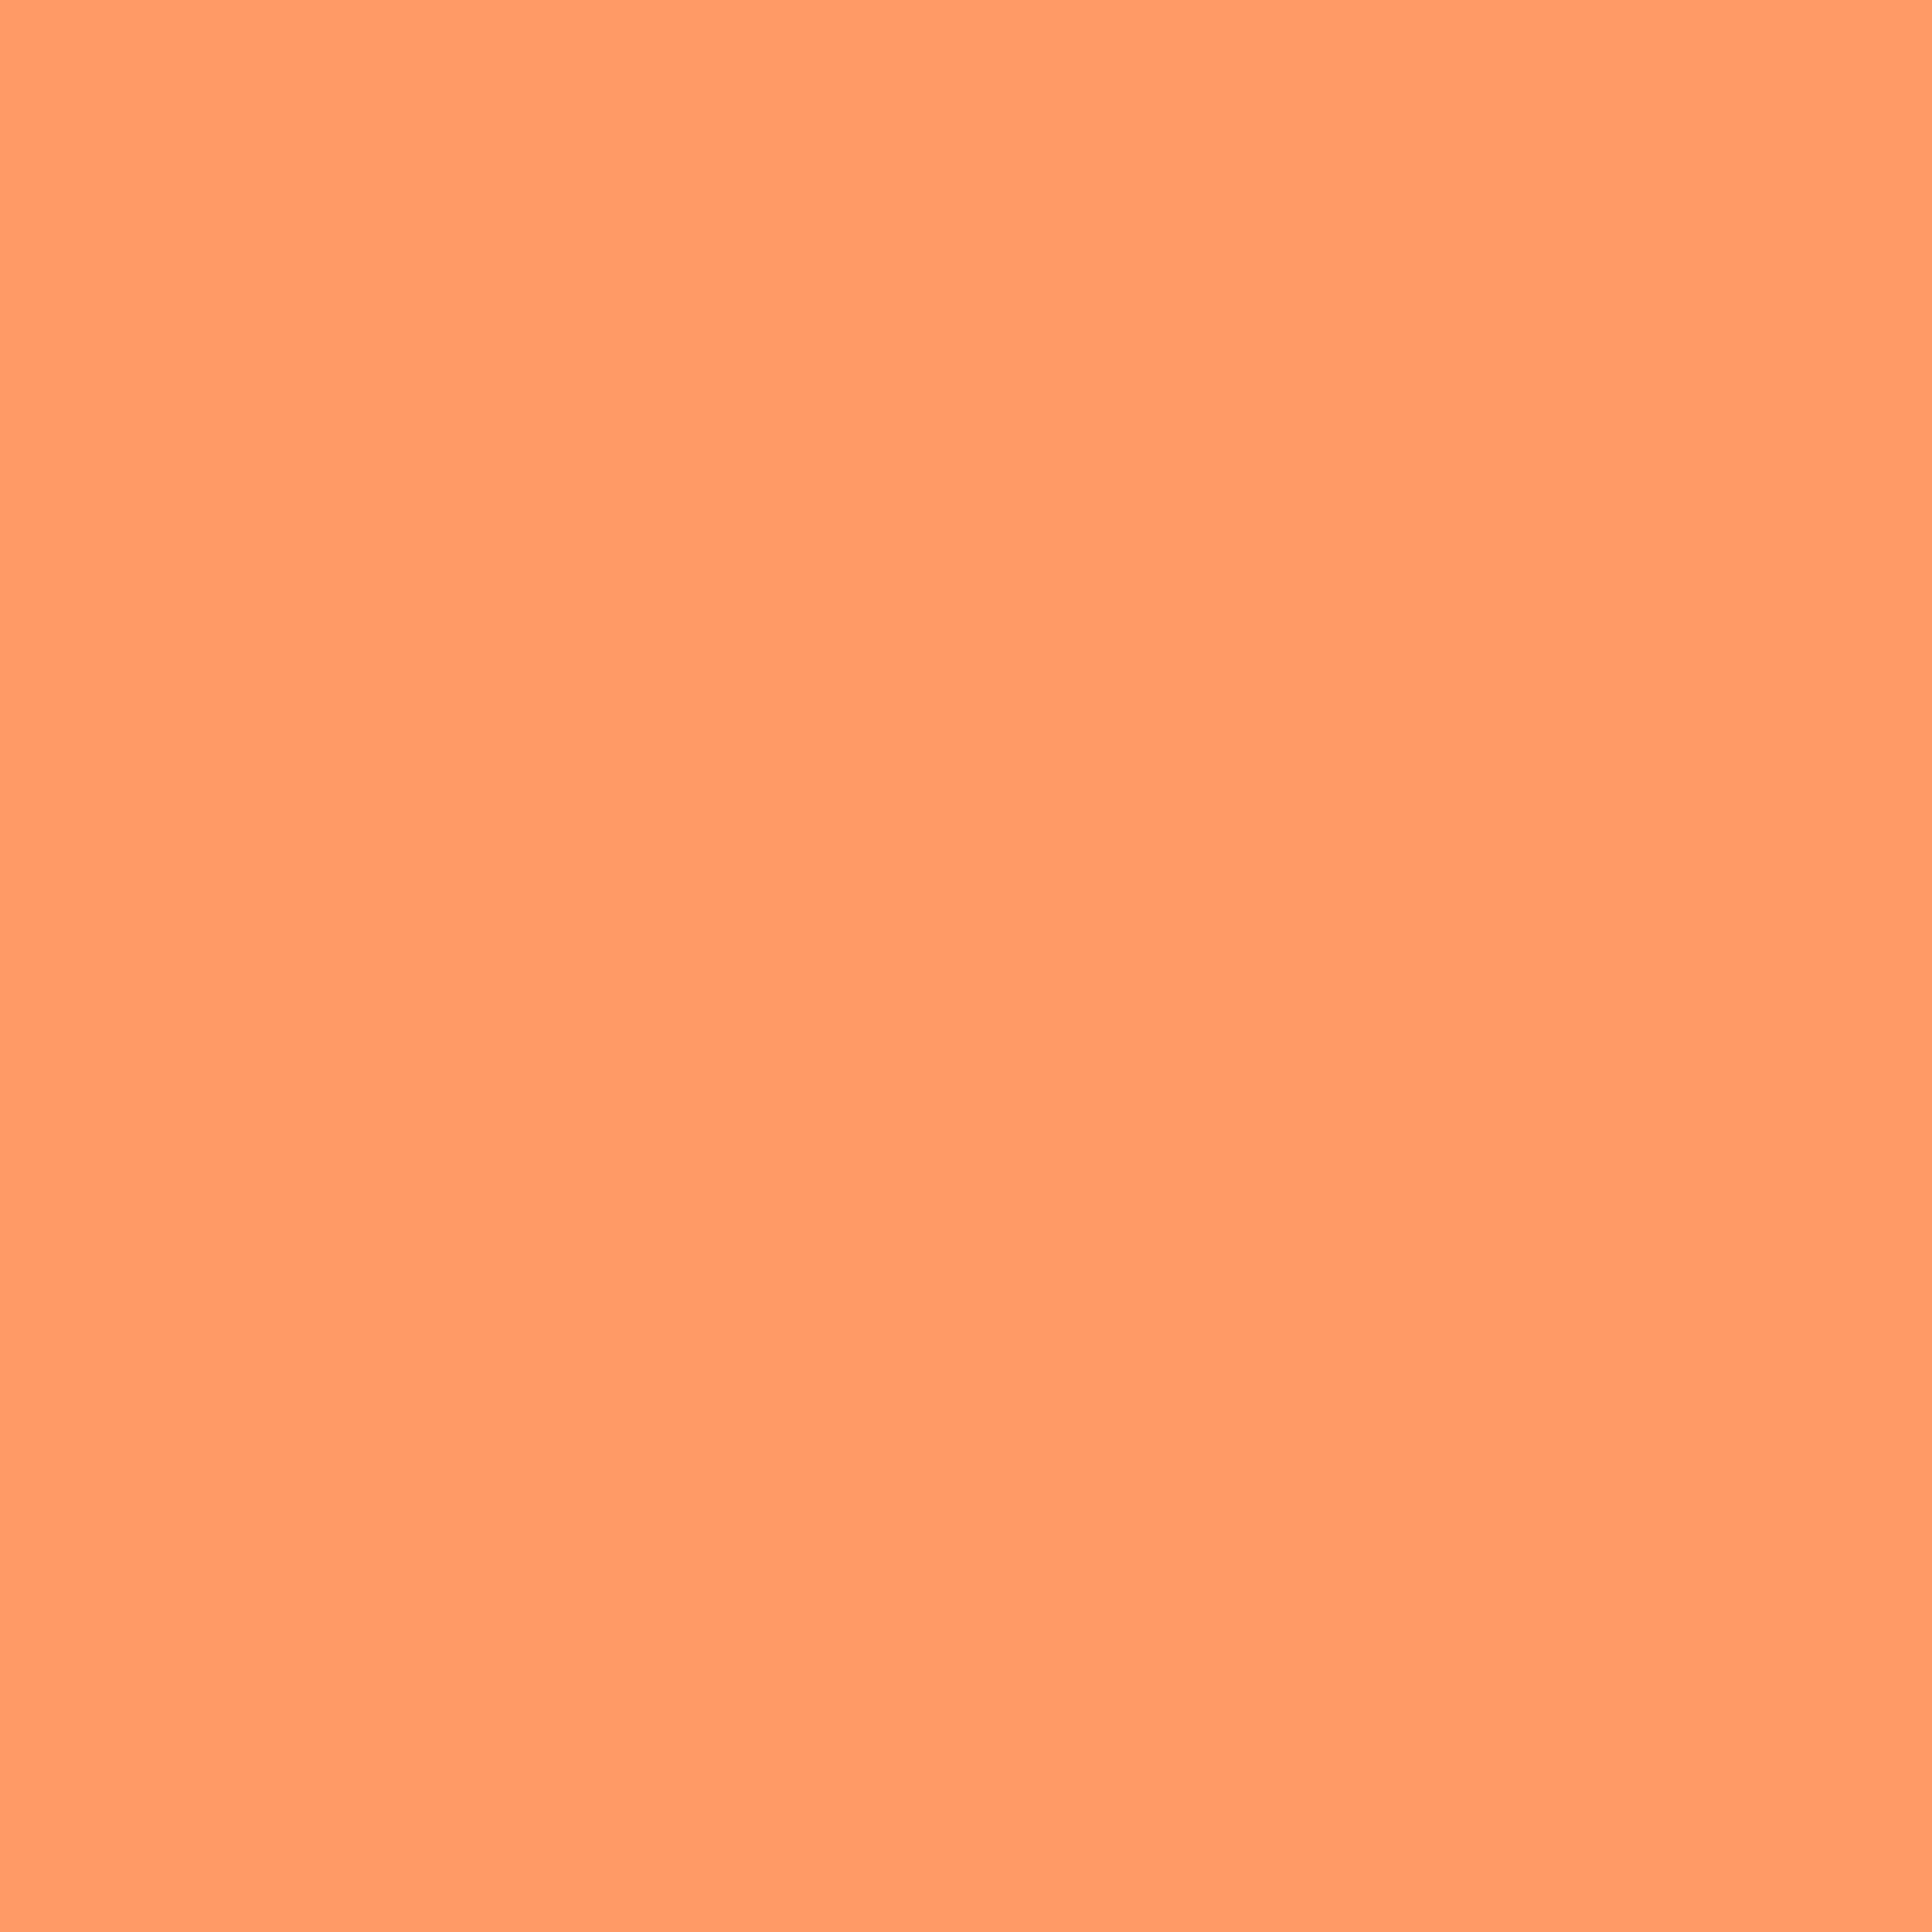 3600x3600 Atomic Tangerine Solid Color Background